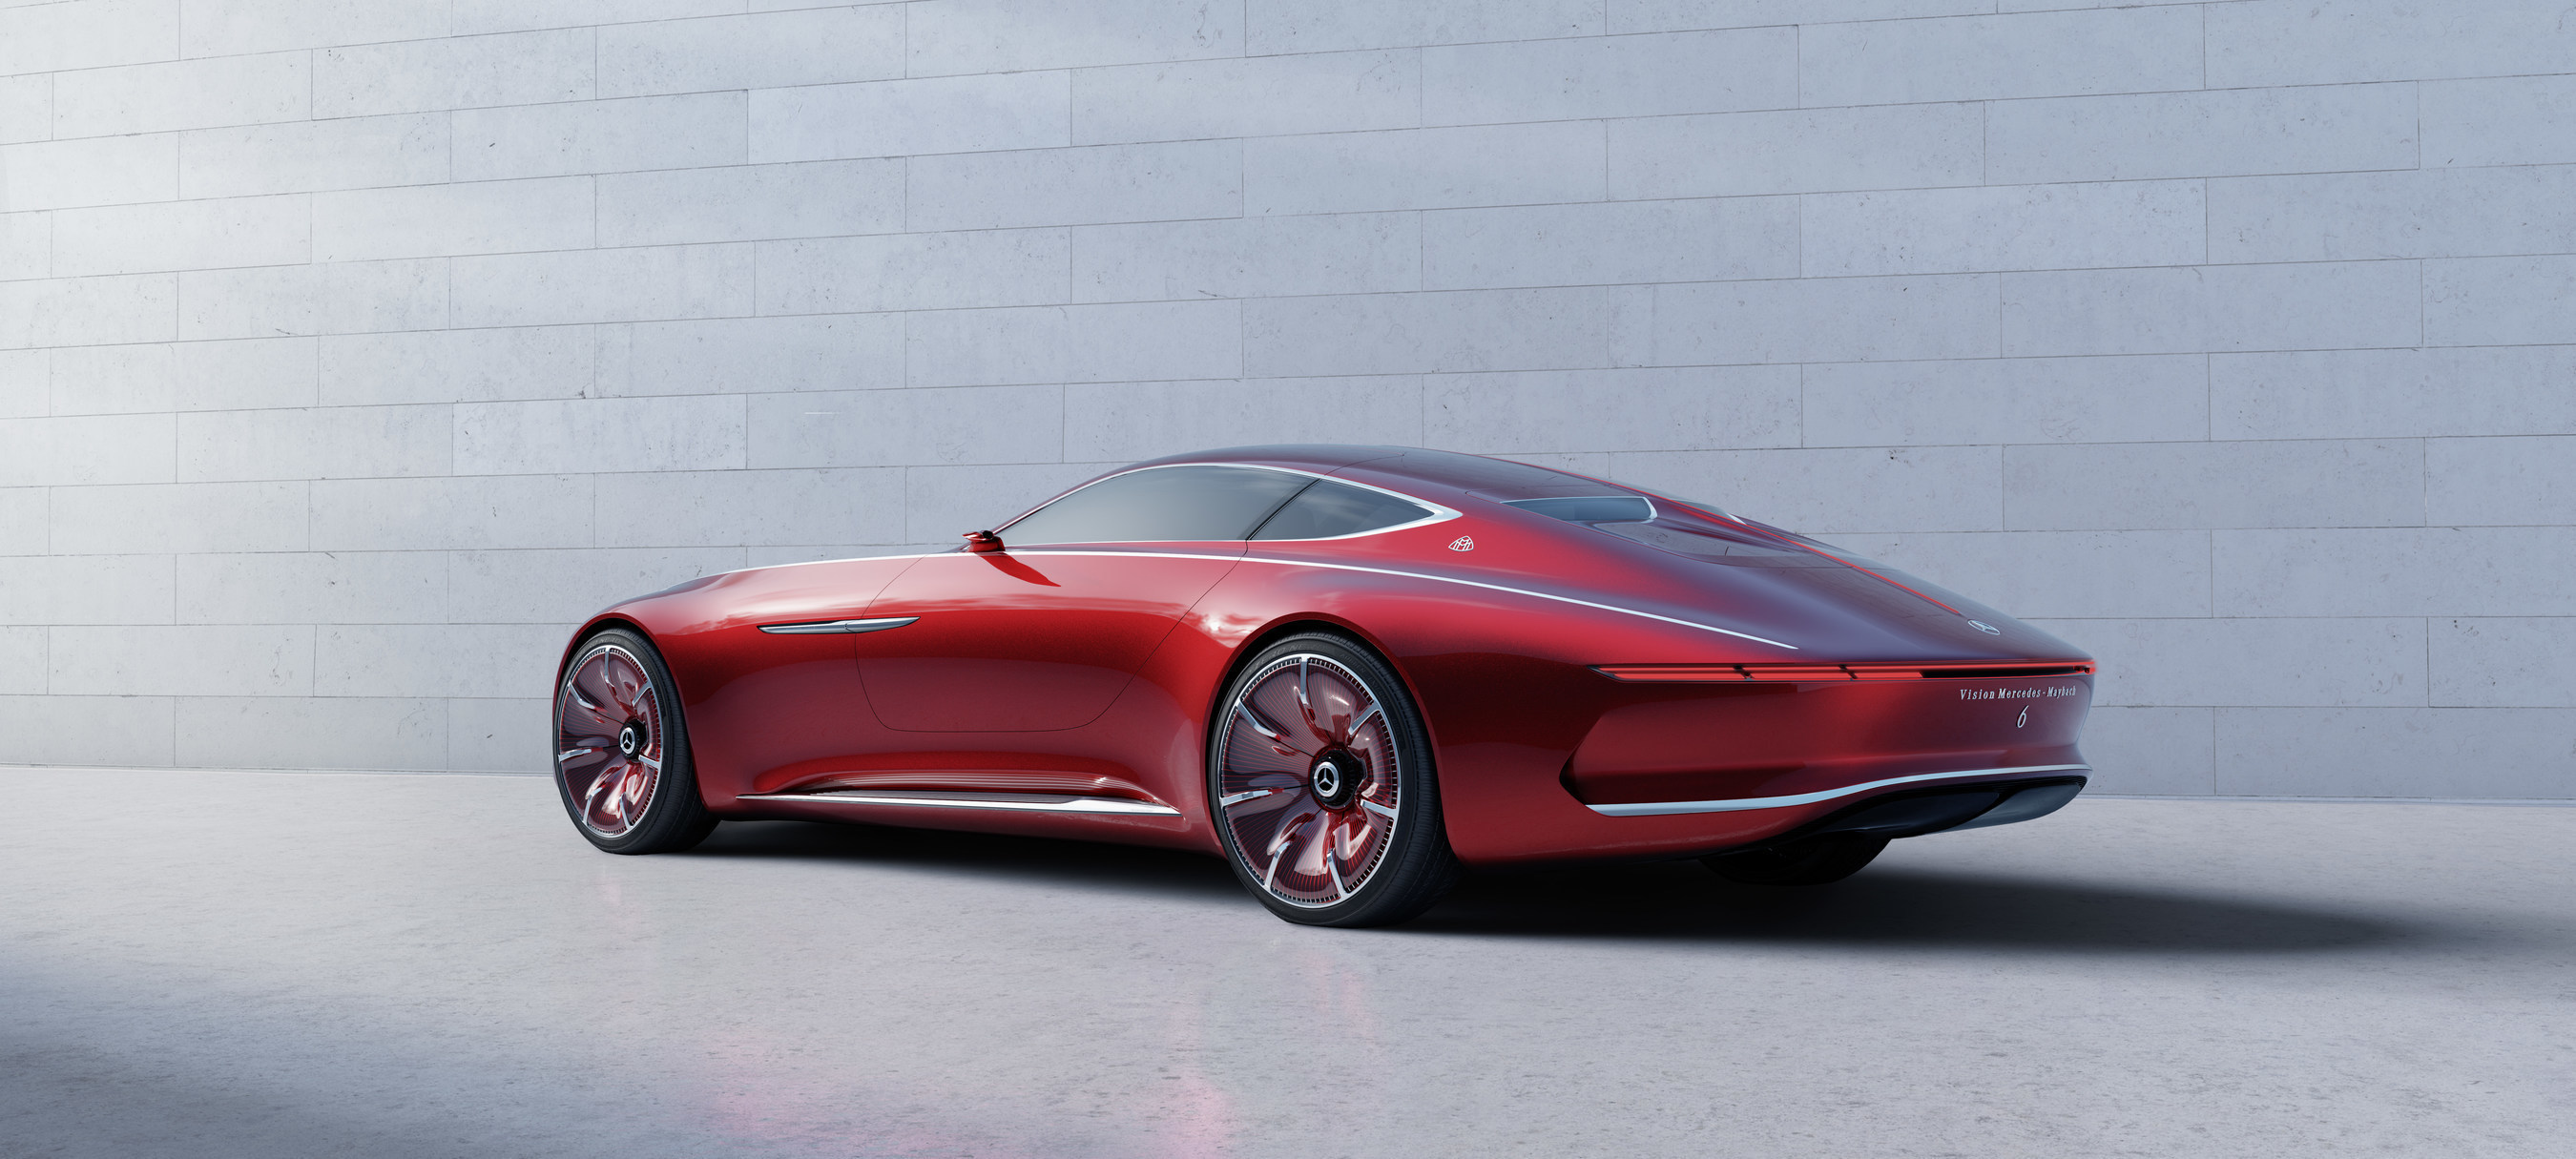 The Vision Mercedes-Maybach 6 made its world debut today in Pebble Beach, CA